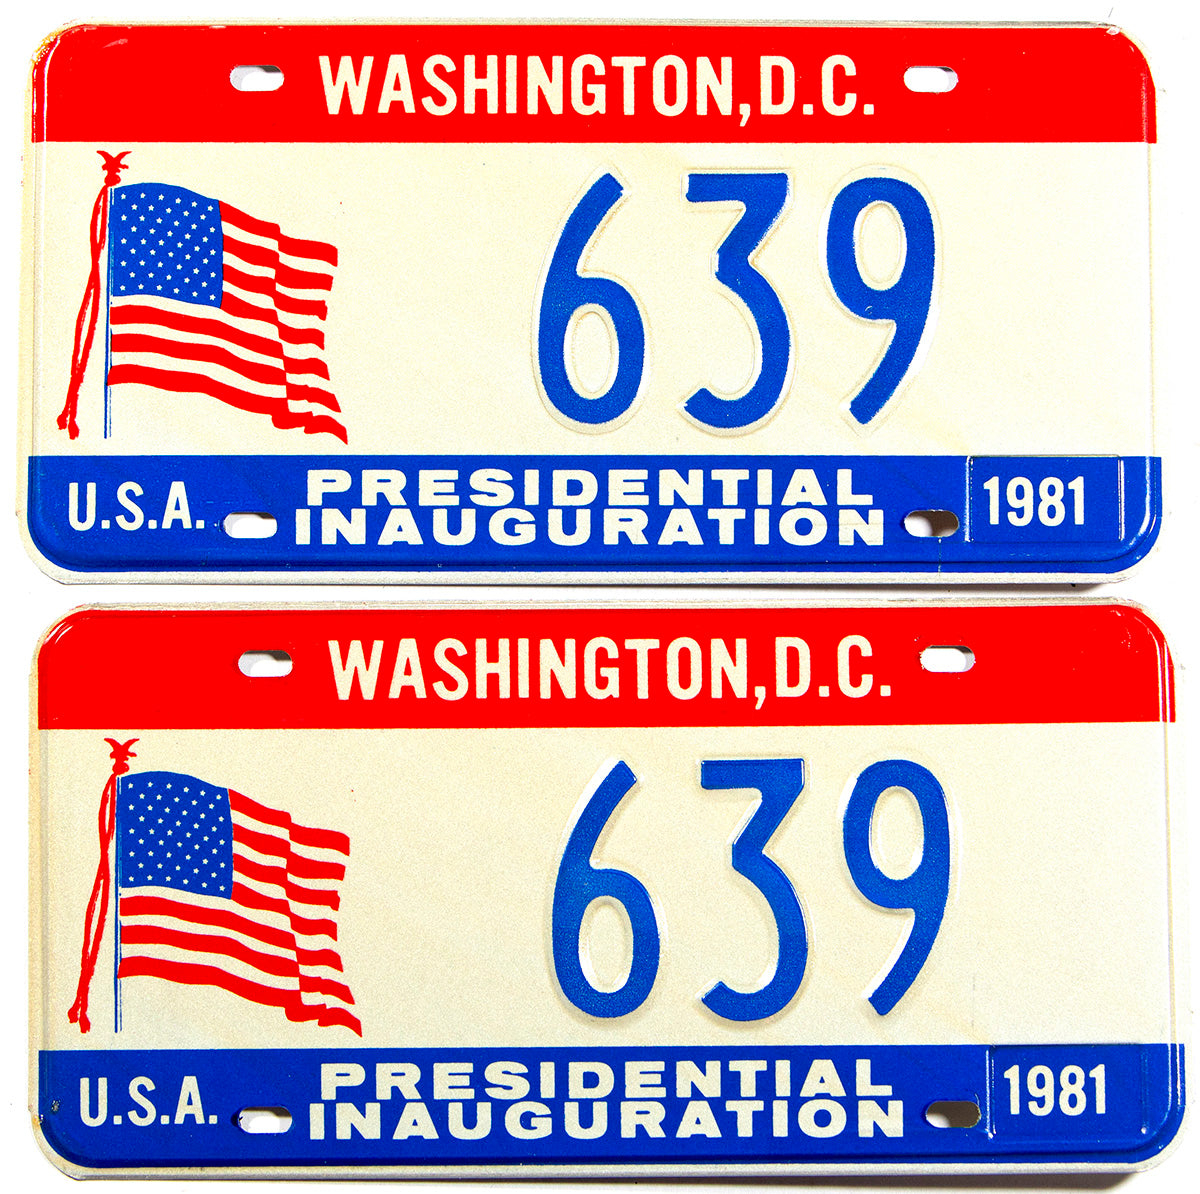 1981 DC Ronald Reagan Inaugural car license plates